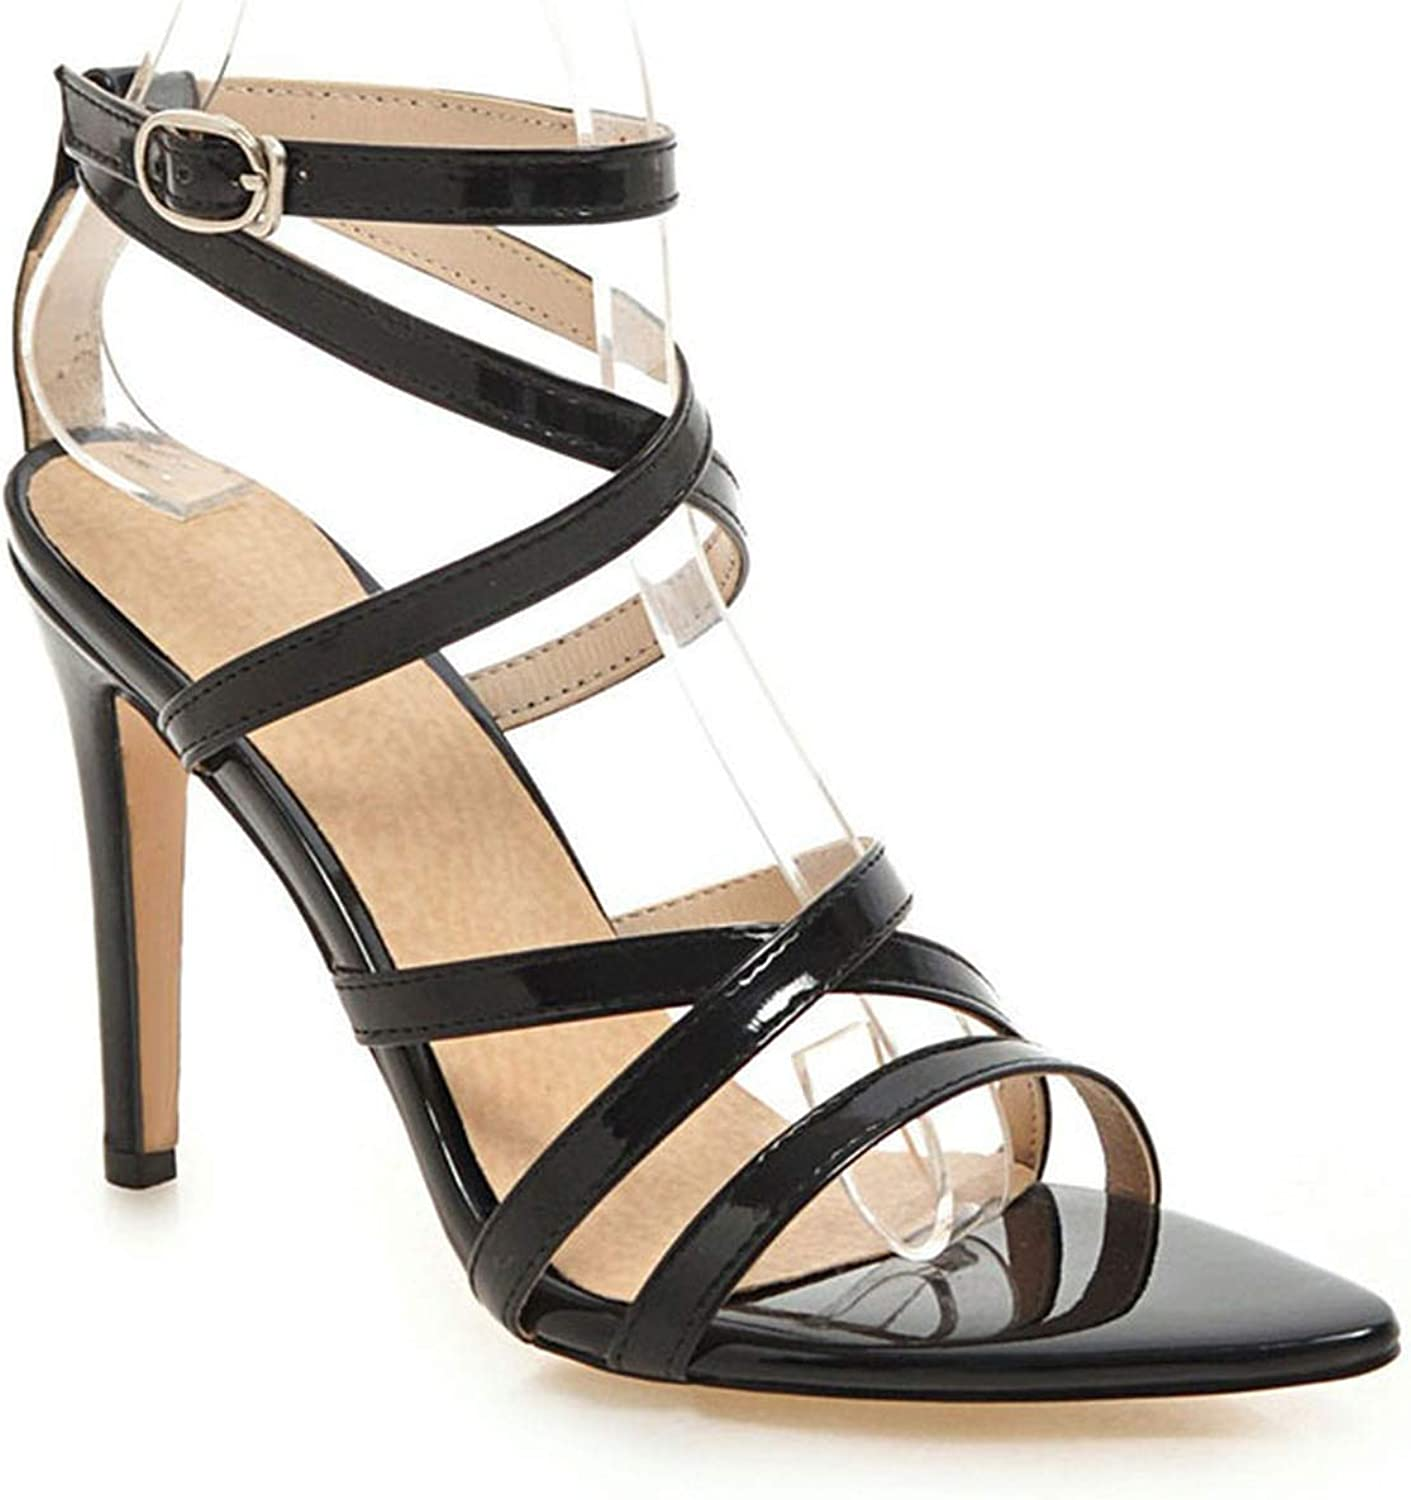 Gladiator Sandals Women High Heels Summer Sexy Buckle Pointed Toe Party shoes Thin Heels Sandalie